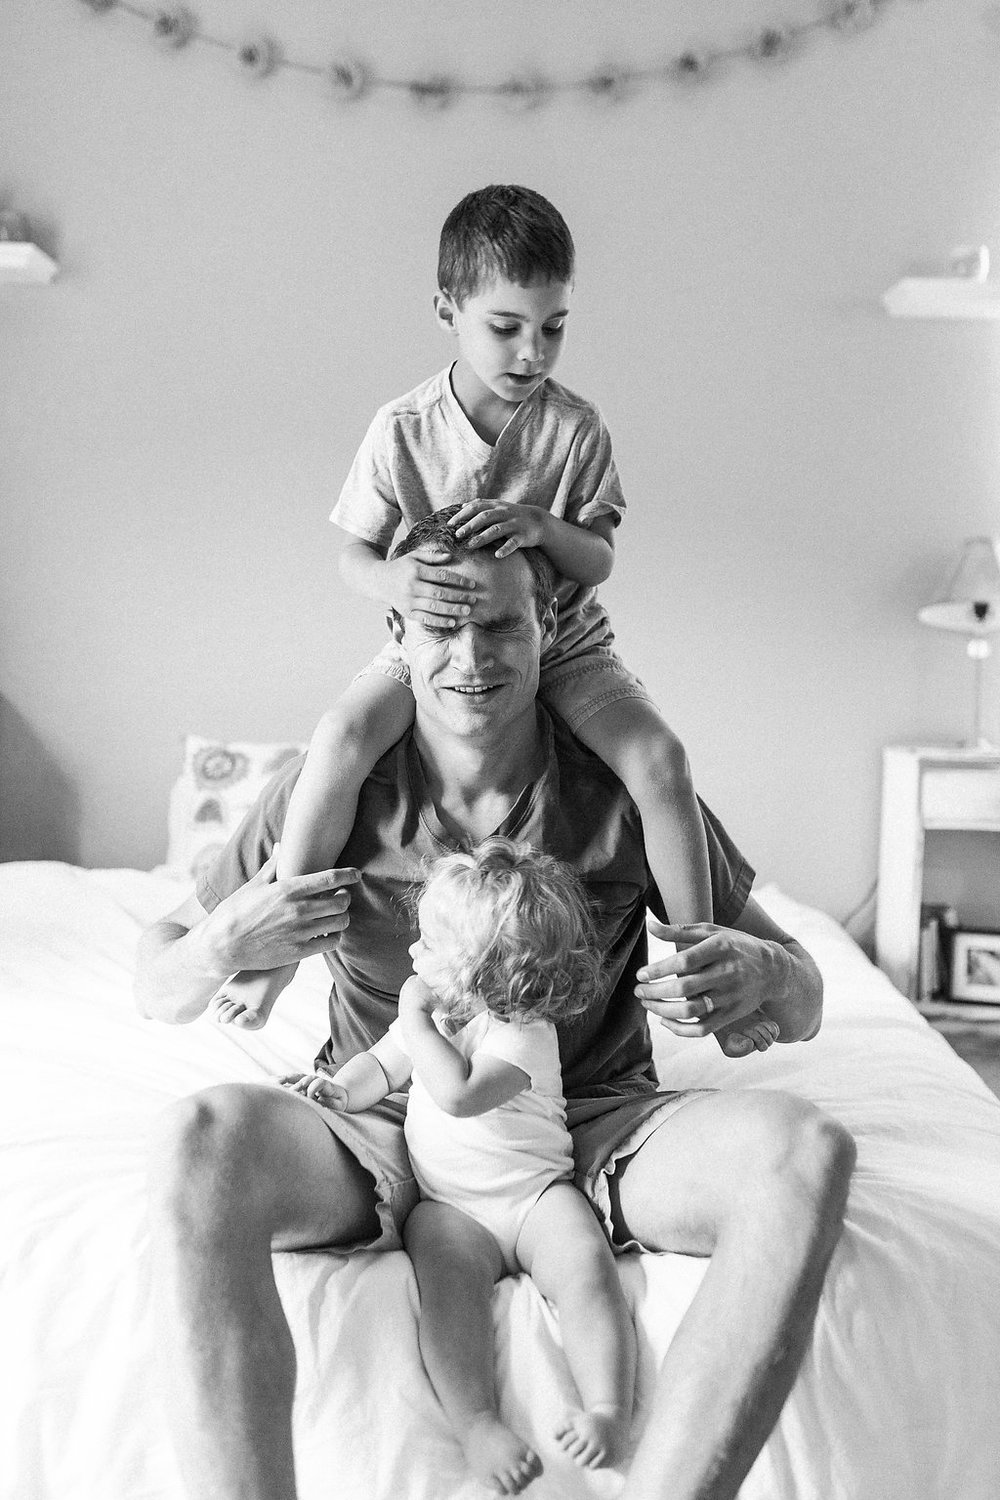 Emma Rose Company   Lifestyle Photographer   Seattle Wedding Photographer   Dad with kids   Black and White Portrait   In Home Lifestyle Session   Family Photo Shoot   Son on Shoulders